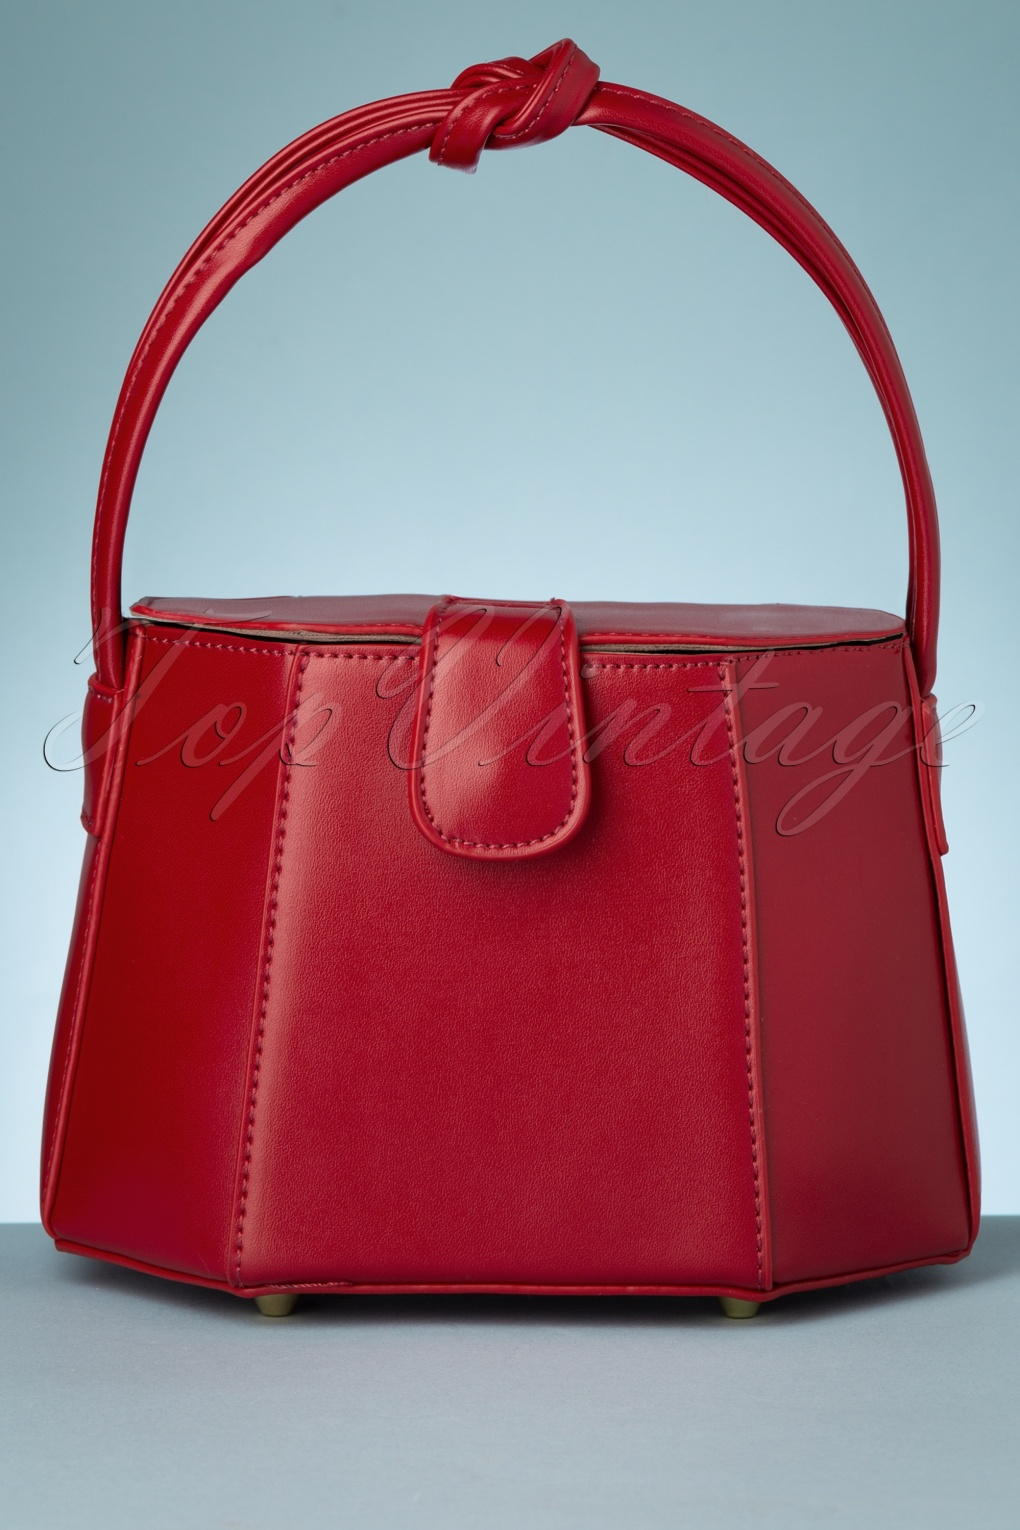 1950s Handbags, Purses, and Evening Bag Styles 50s Felicity Box Bag in Red £38.91 AT vintagedancer.com